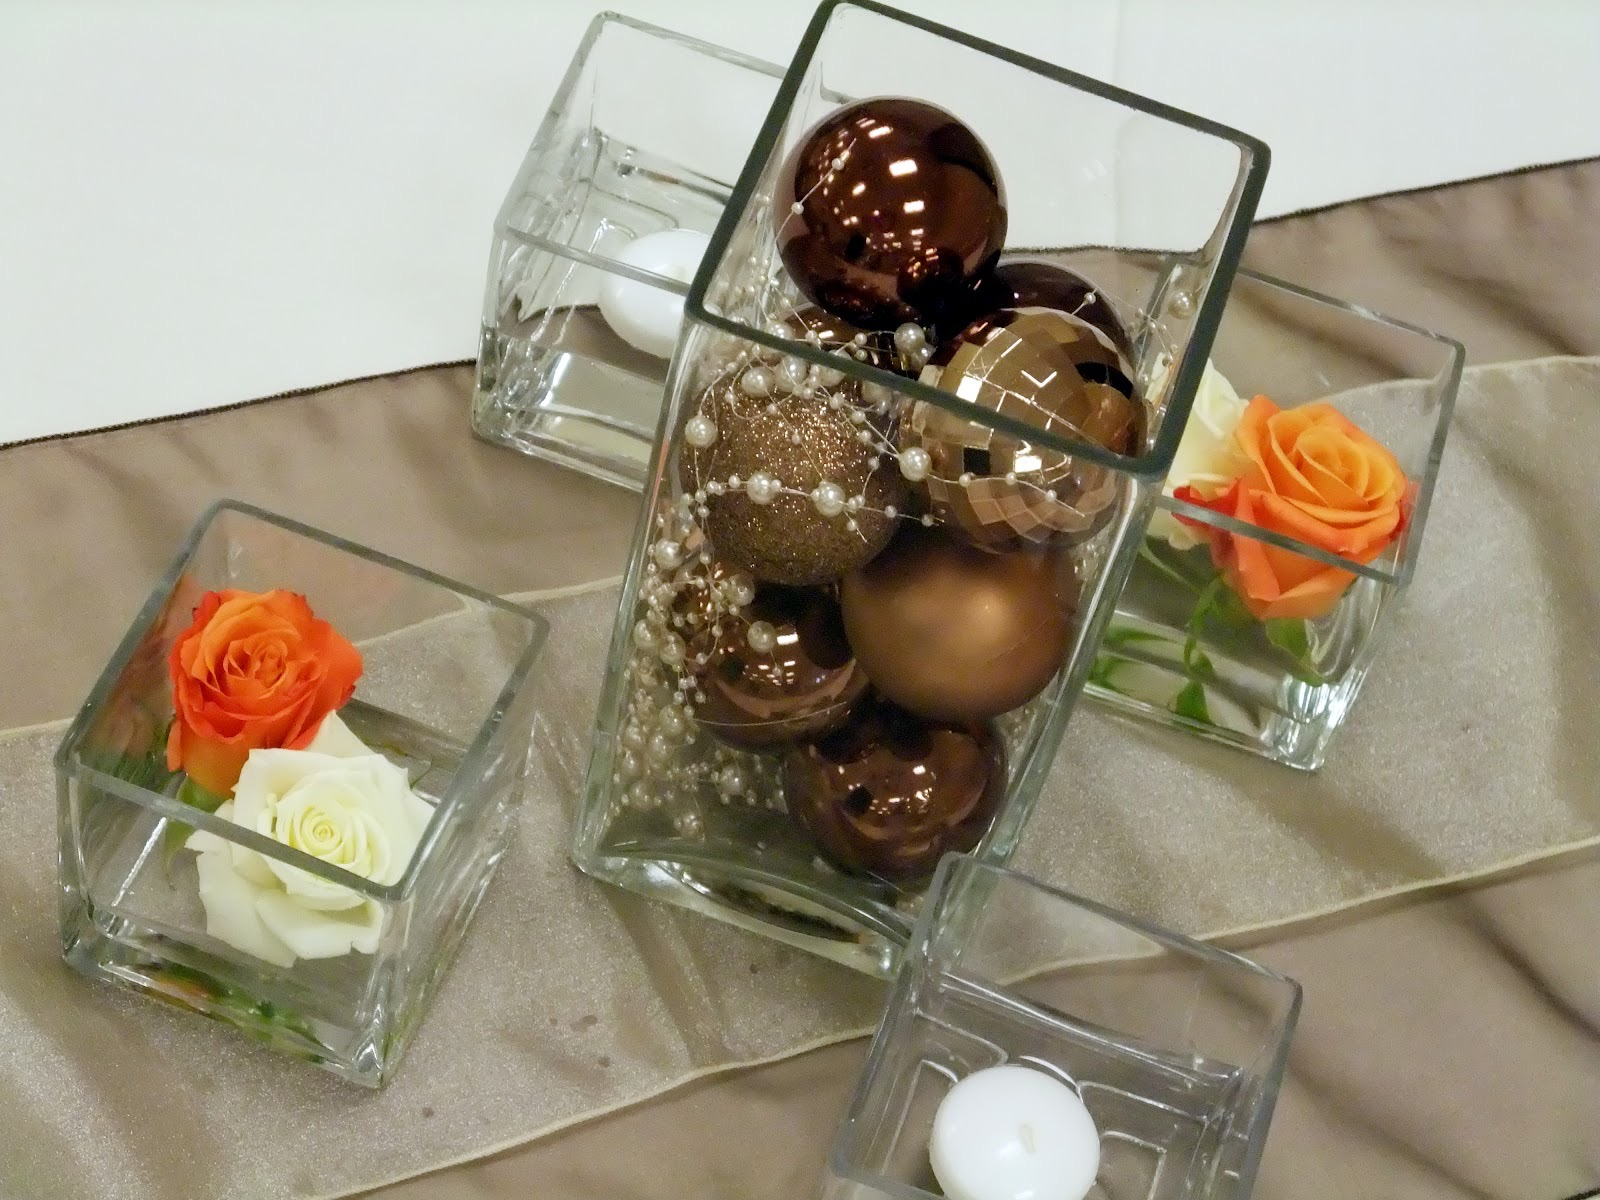 Simple DIY Non Floral Centerpiece With Square Glass Vases (Image 29 of 35)